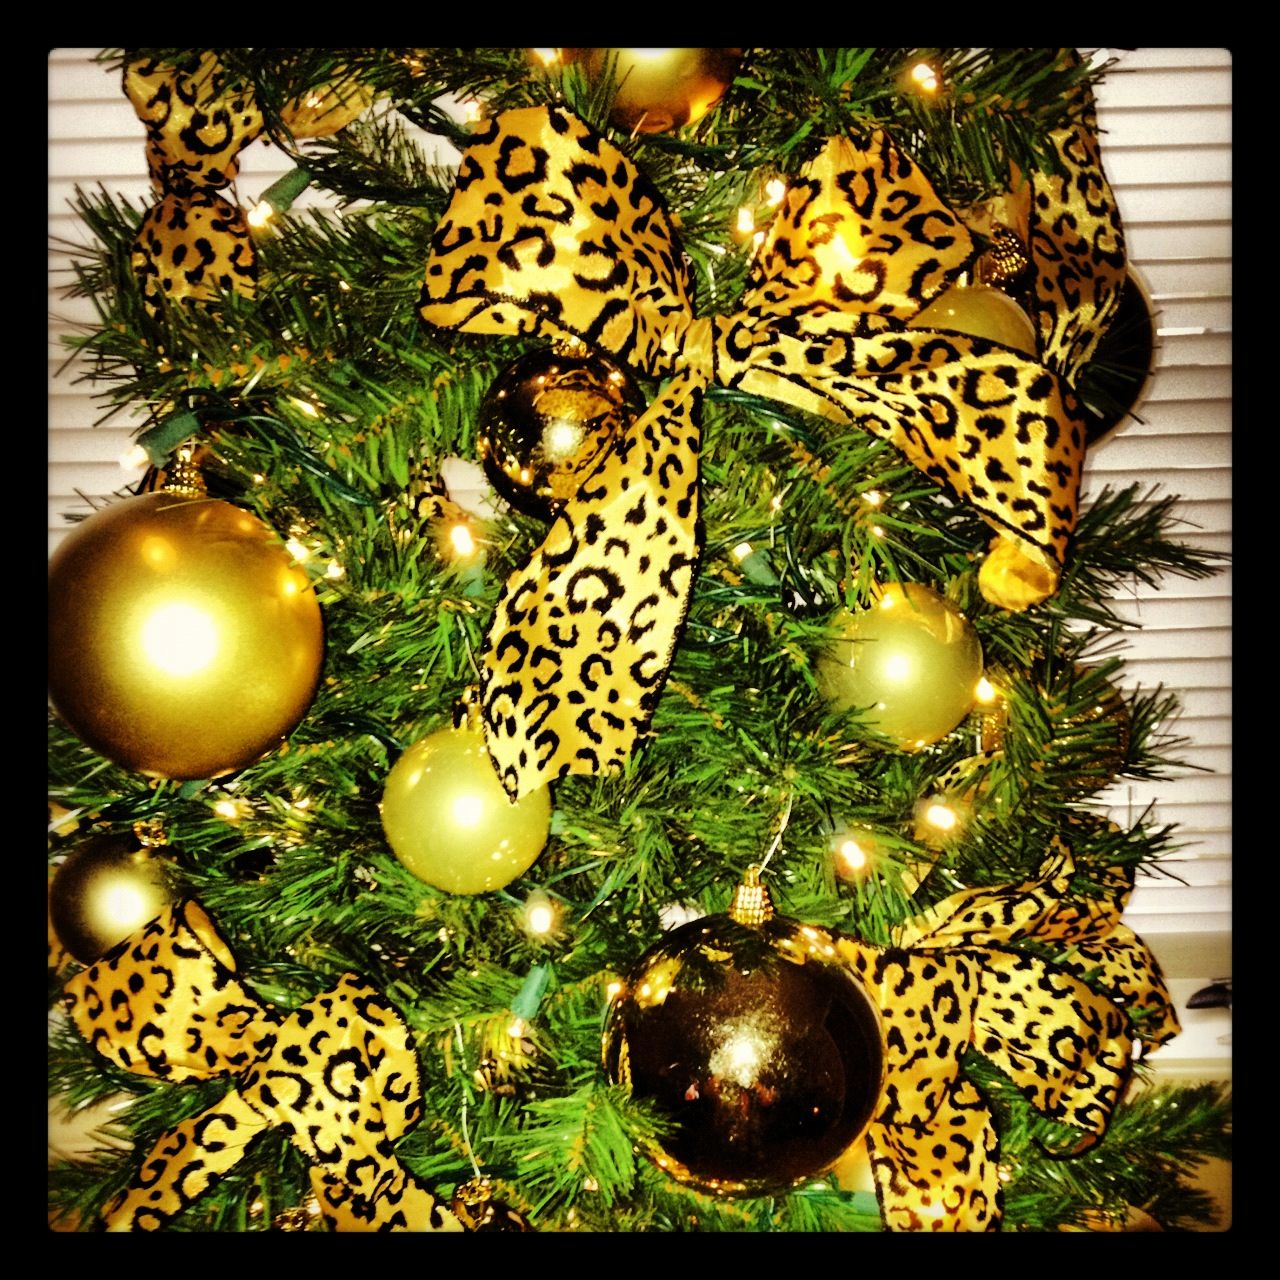 My Cheetah Christmas Tree!